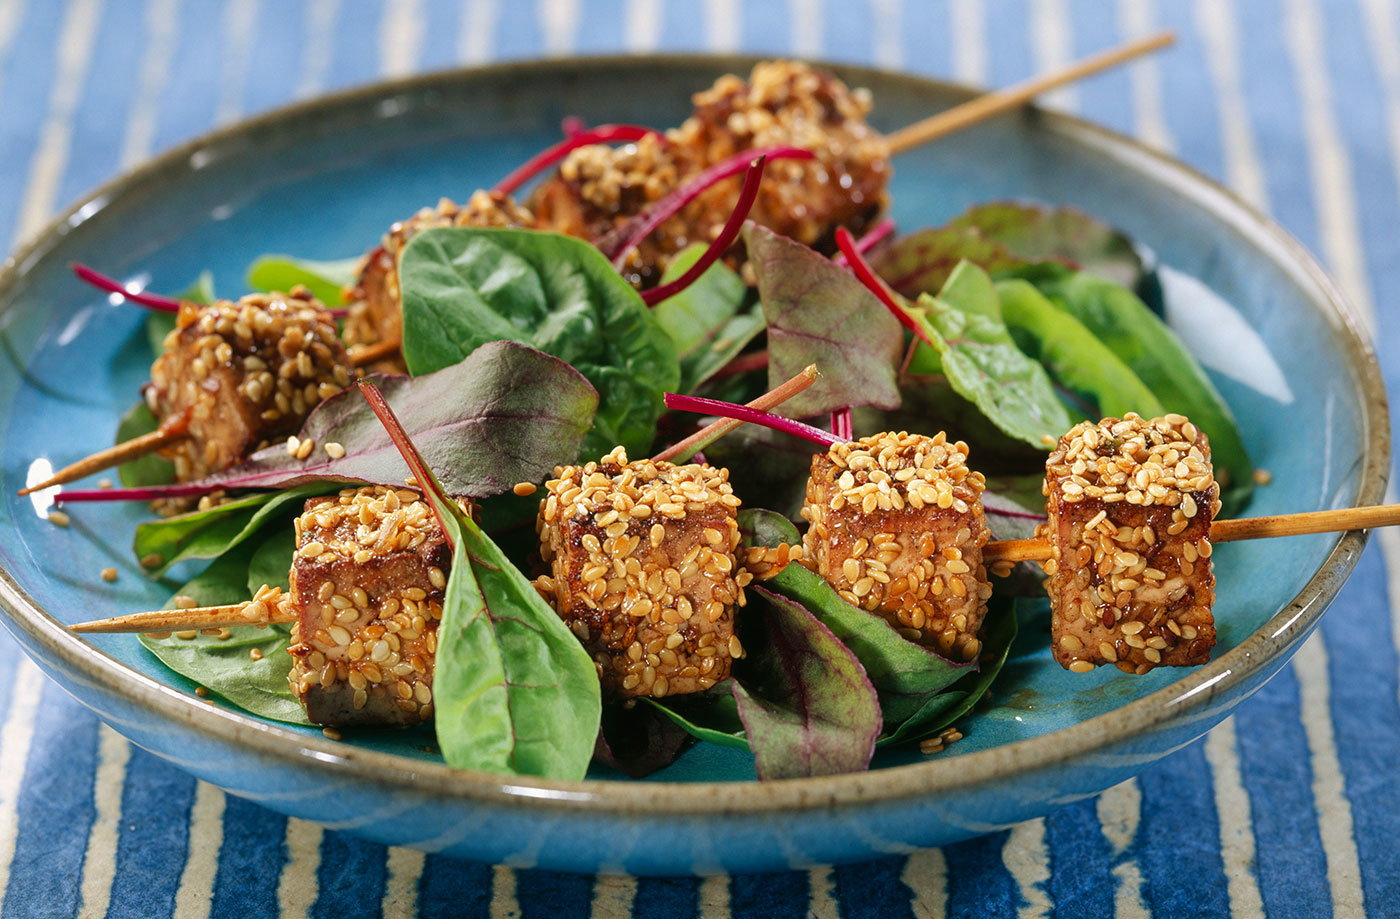 Tofu brochettes with sesame seeds recipe